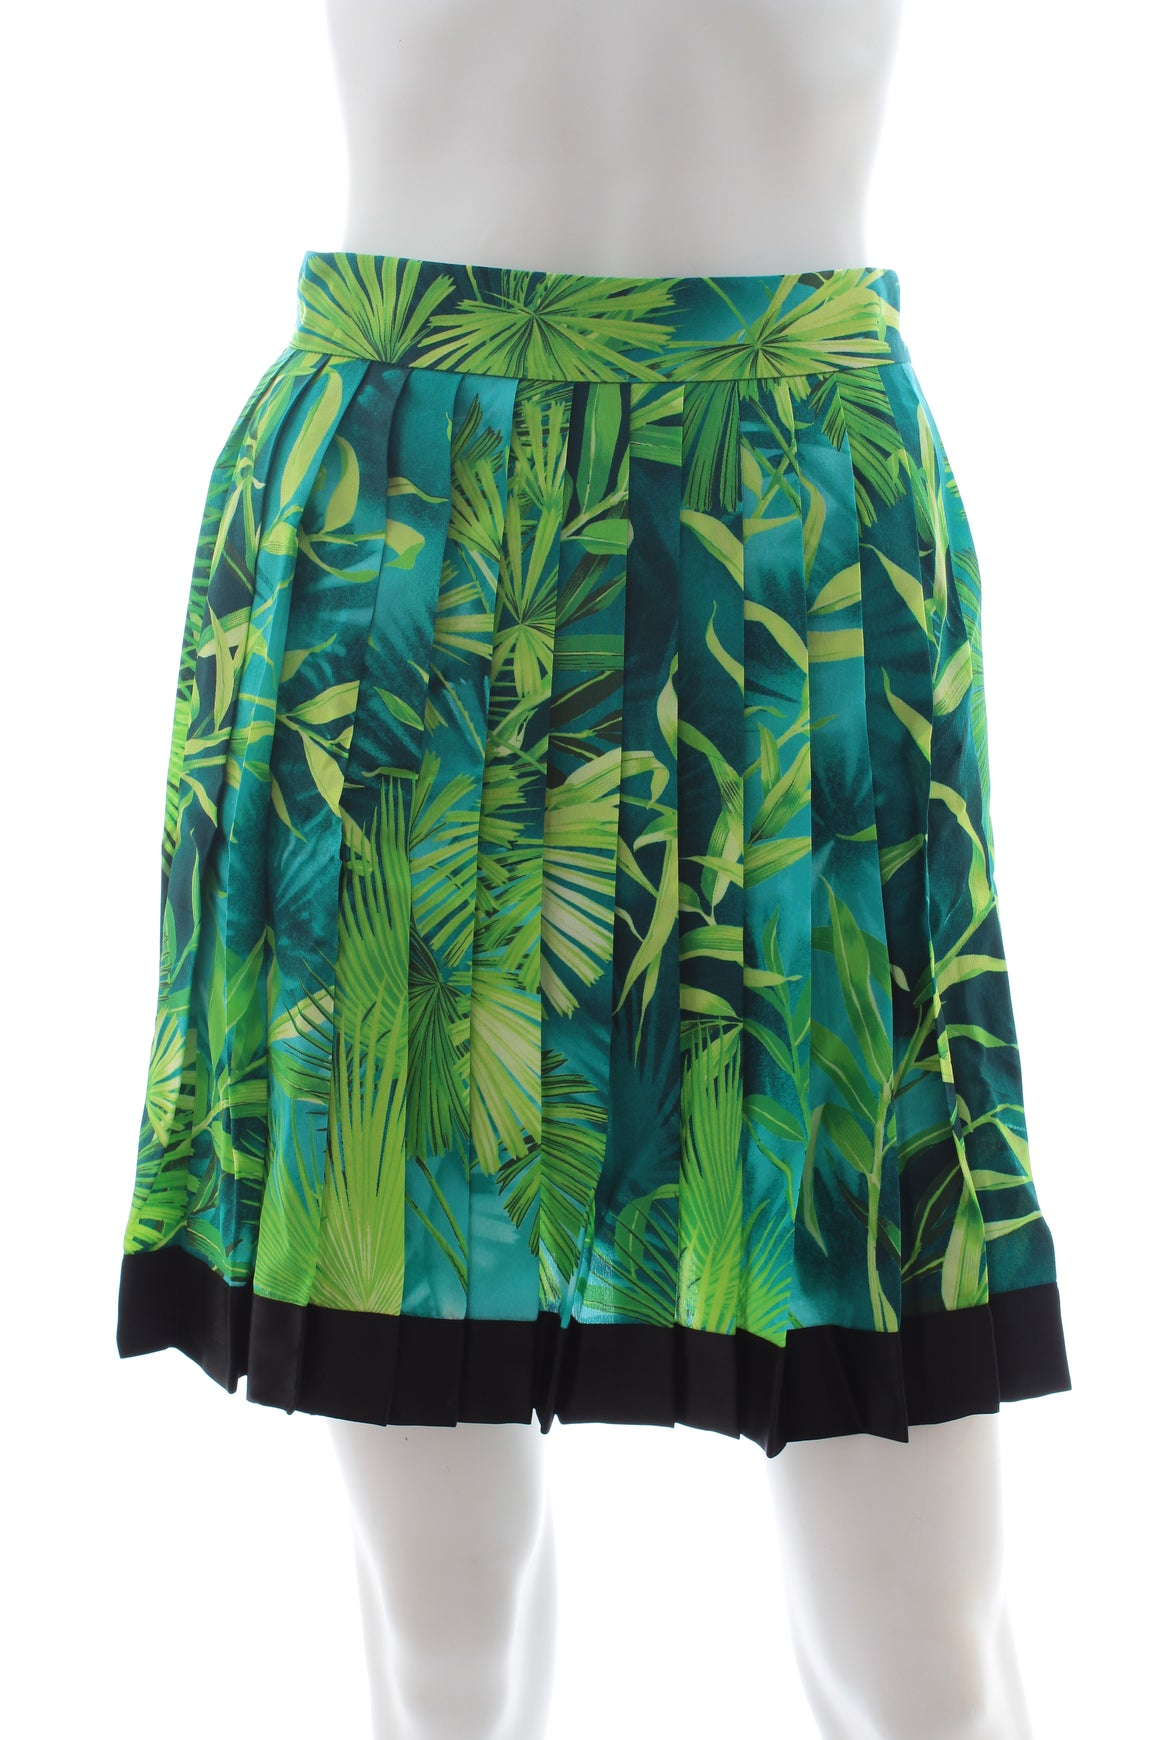 Versace Jungle Print Pleated Silk Skirt - Current Season